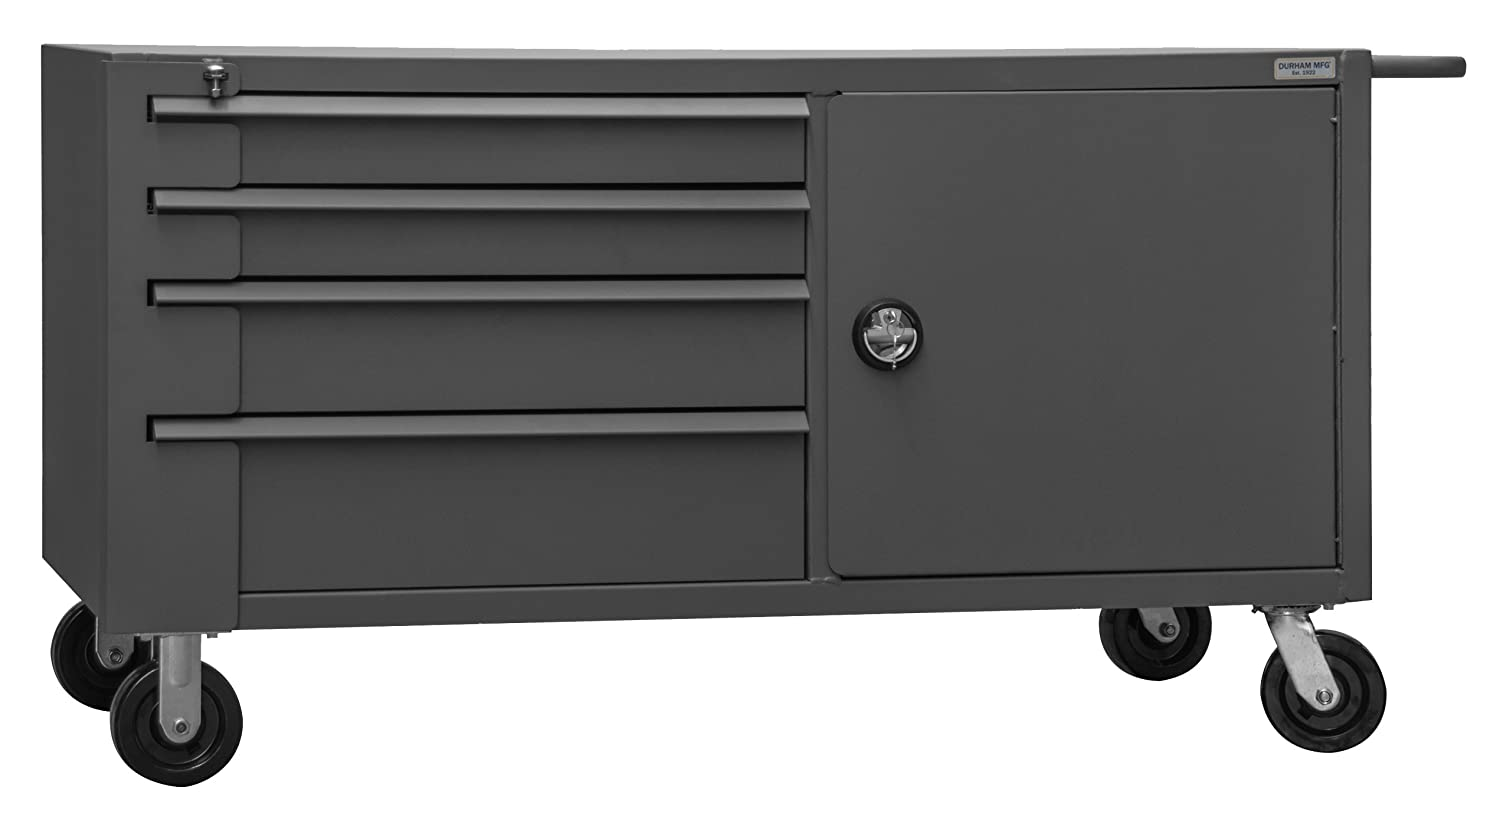 Durham 14 Gauge Steel Mobile Bench Cabinet with Fixed Shelf, Gray, 4000 lbs Load Capacity, 34